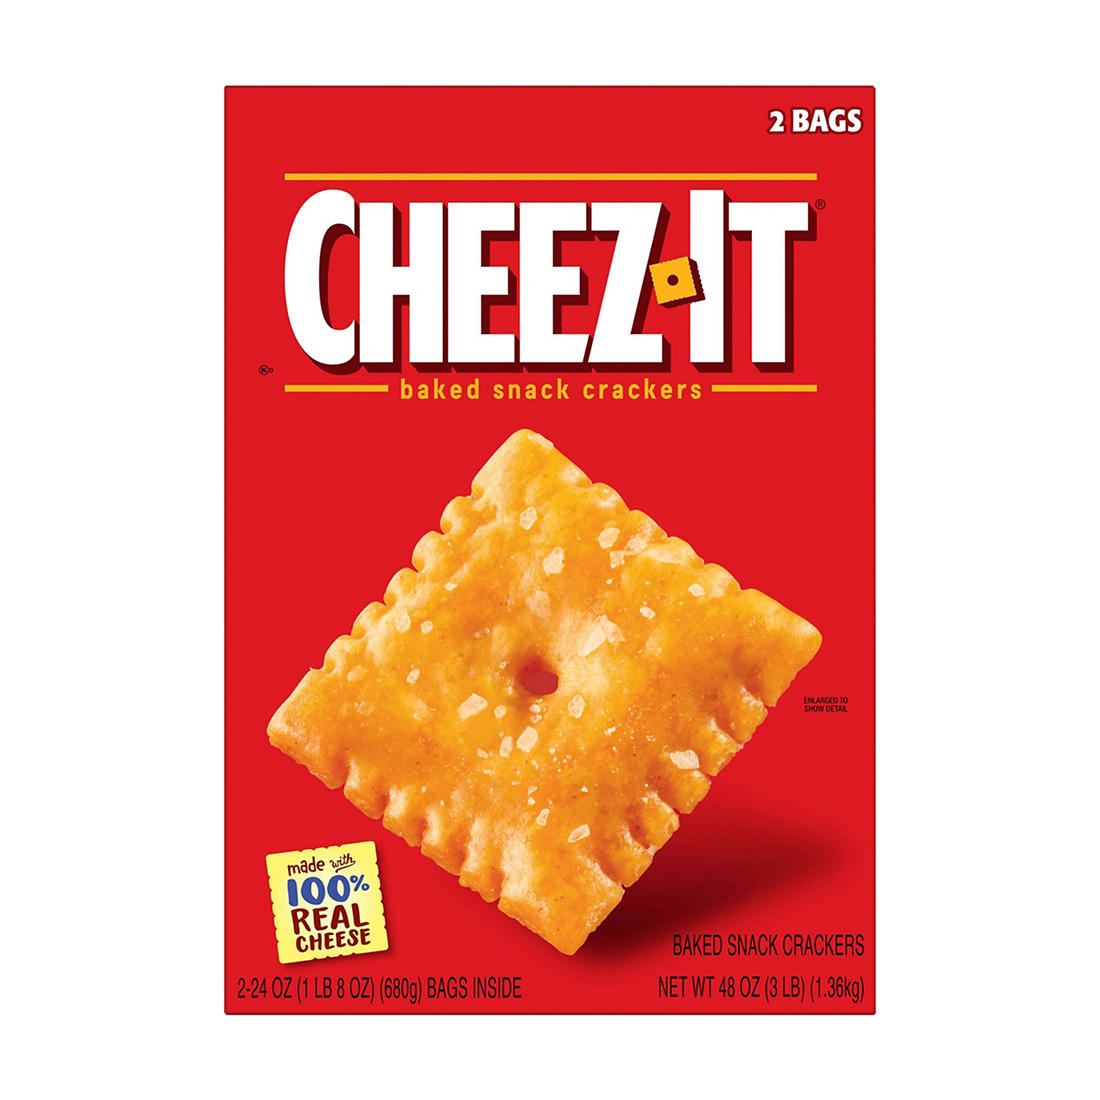 graphic regarding Cheez It Coupon Printable titled Cheez-It Crackers, 48 oz.